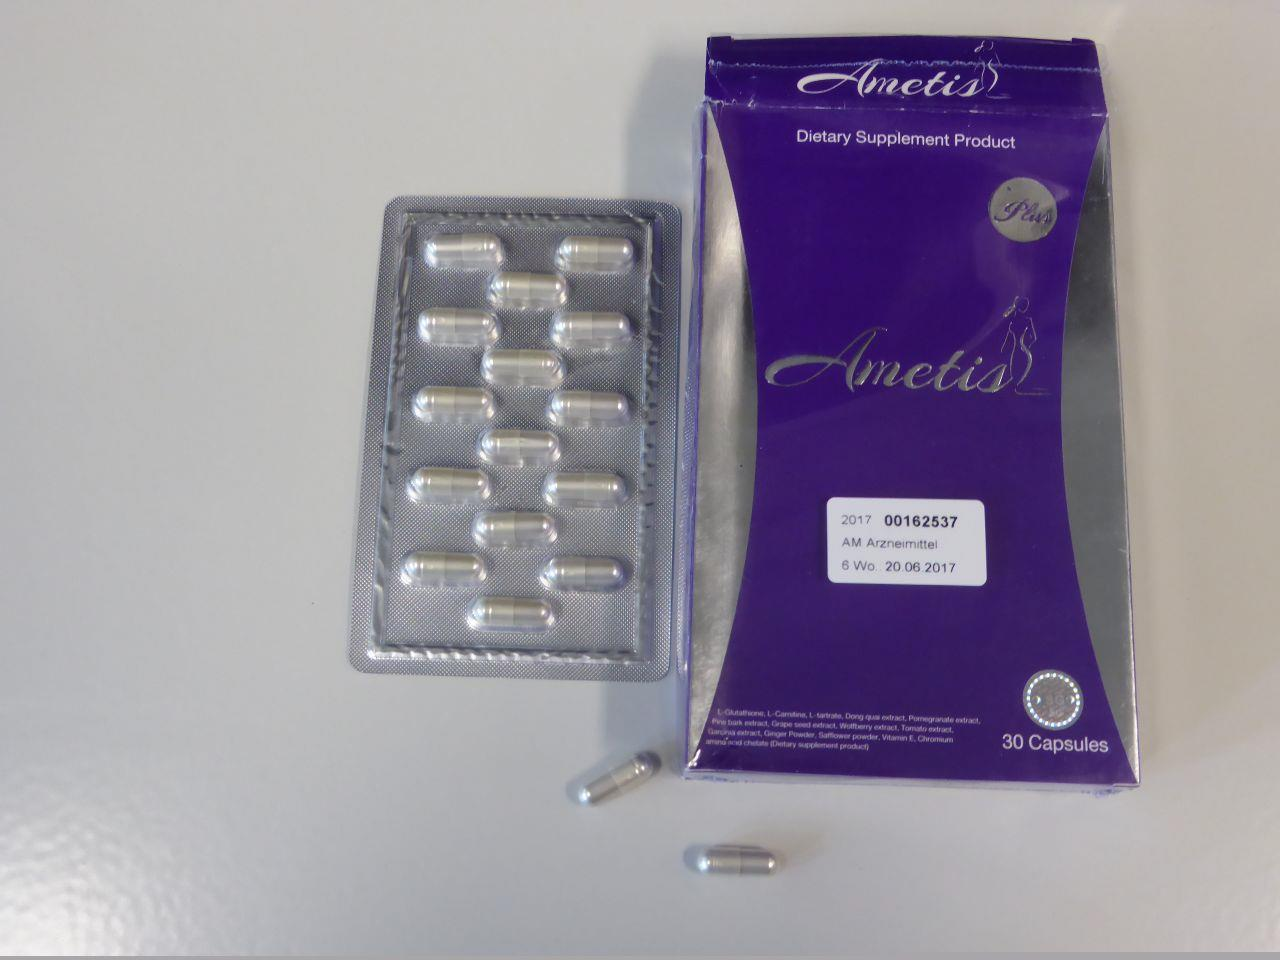 Image of the illigal product: Ametis Plus